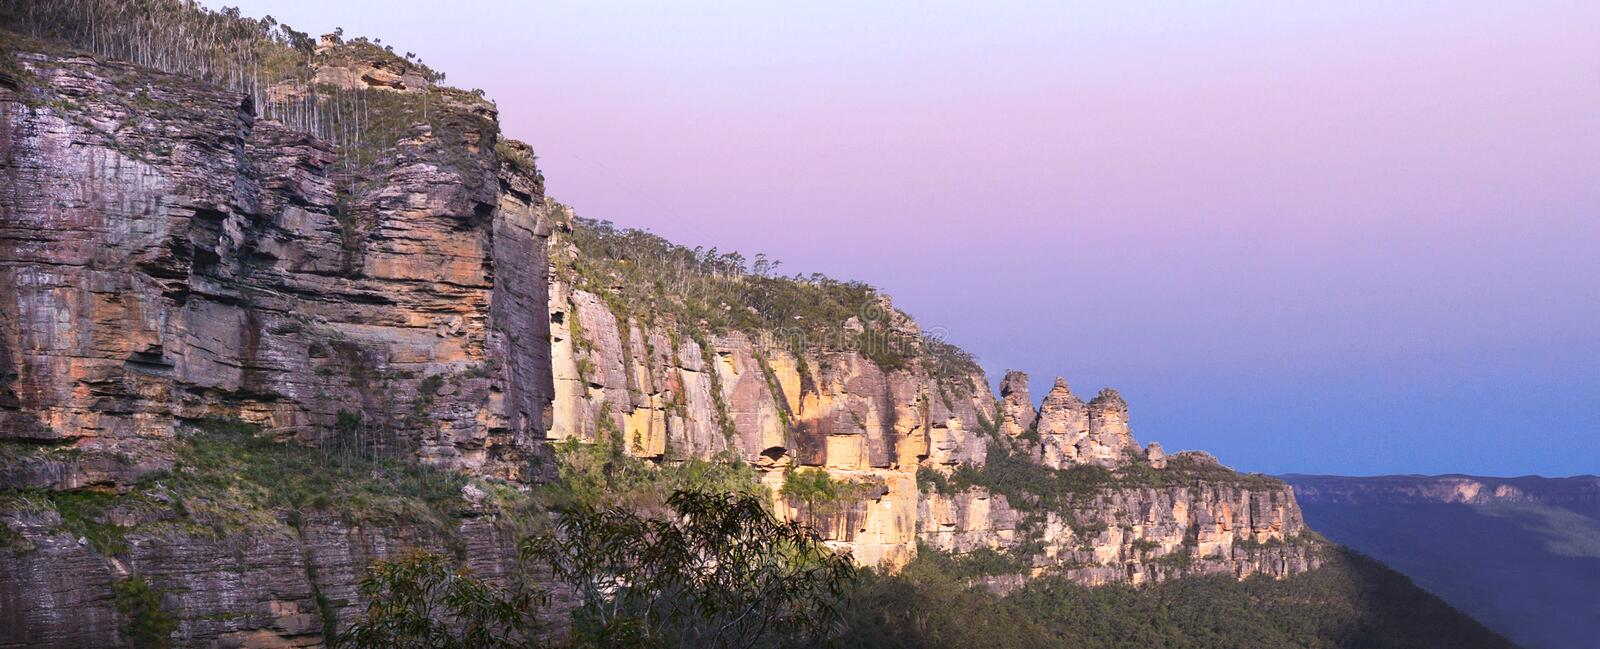 Panoramic landscape view of The Three Sisters rock formation in royalty free stock photos